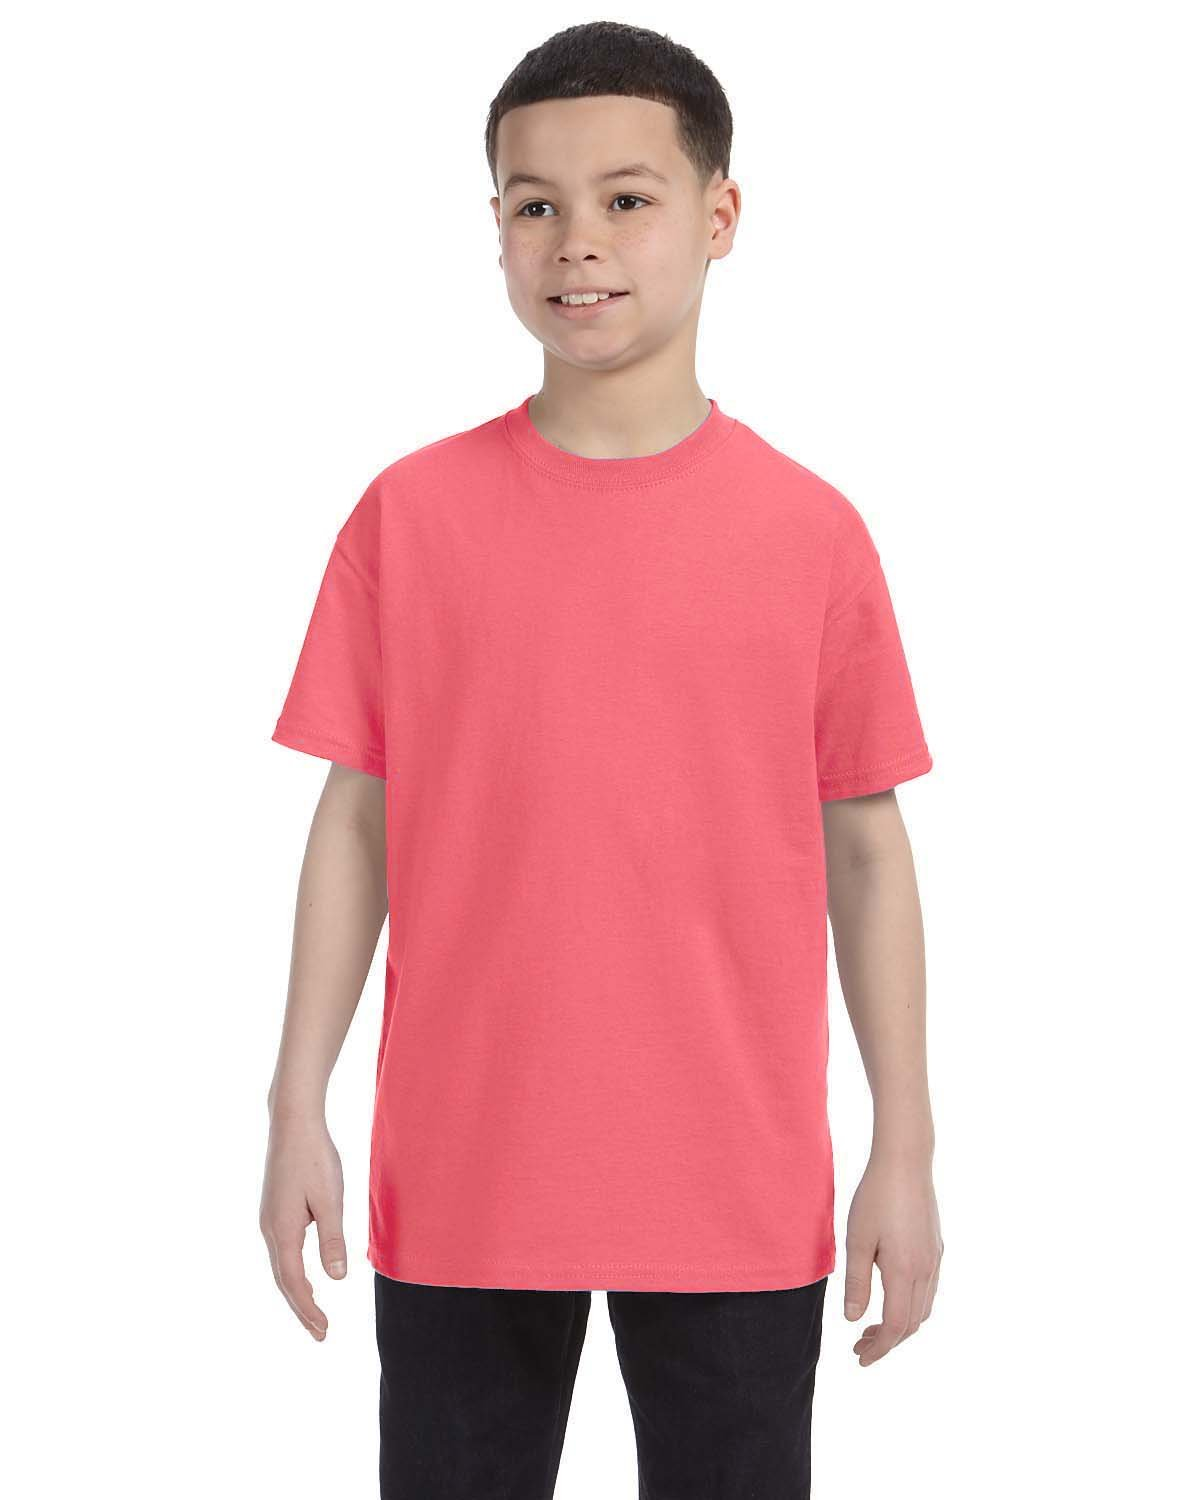 Hanes Youth Authentic-T T-Shirt CHARISMA CORAL